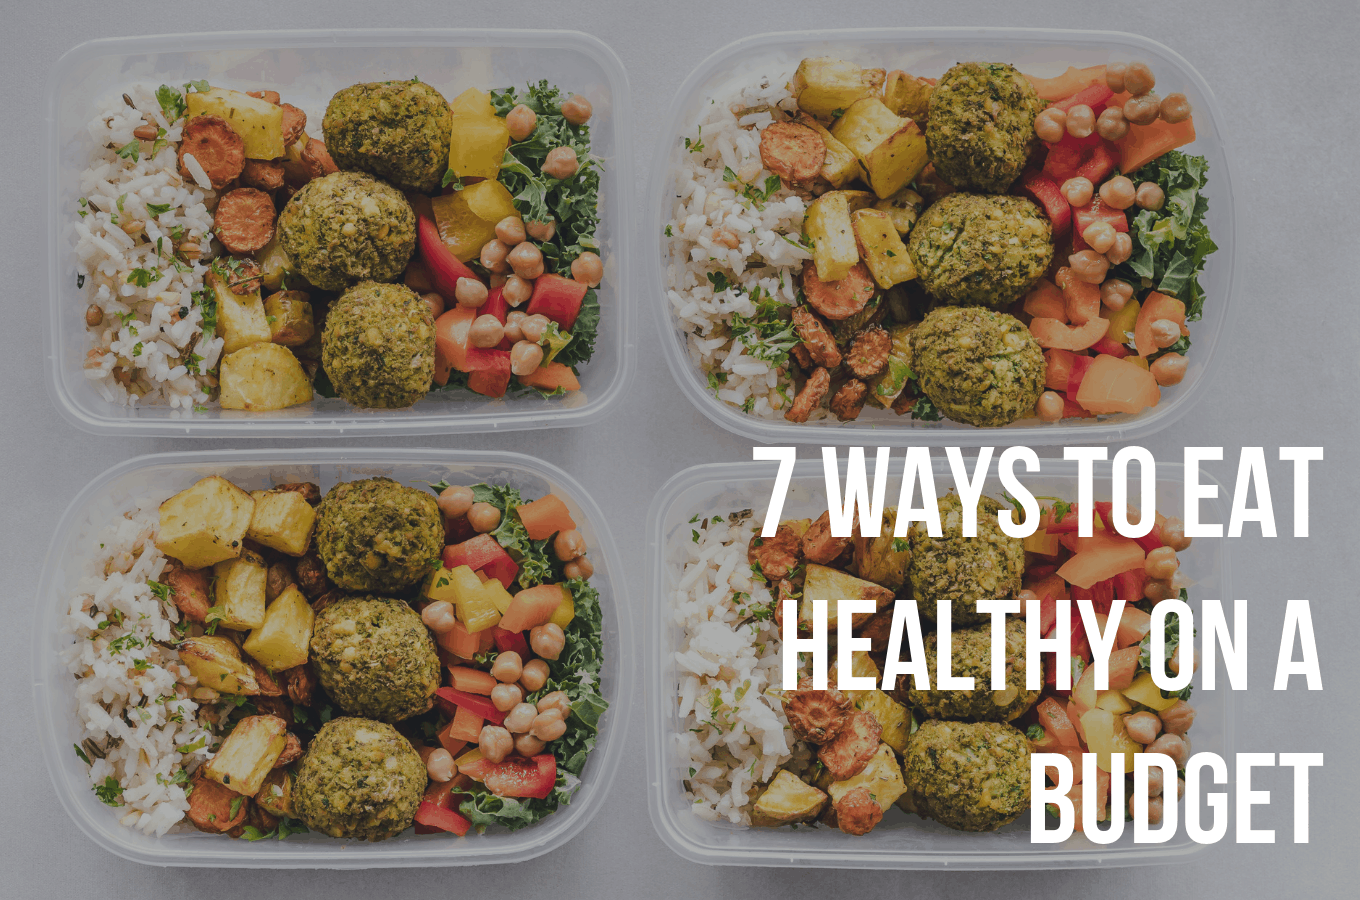 Ways to eat healthy on a low budget